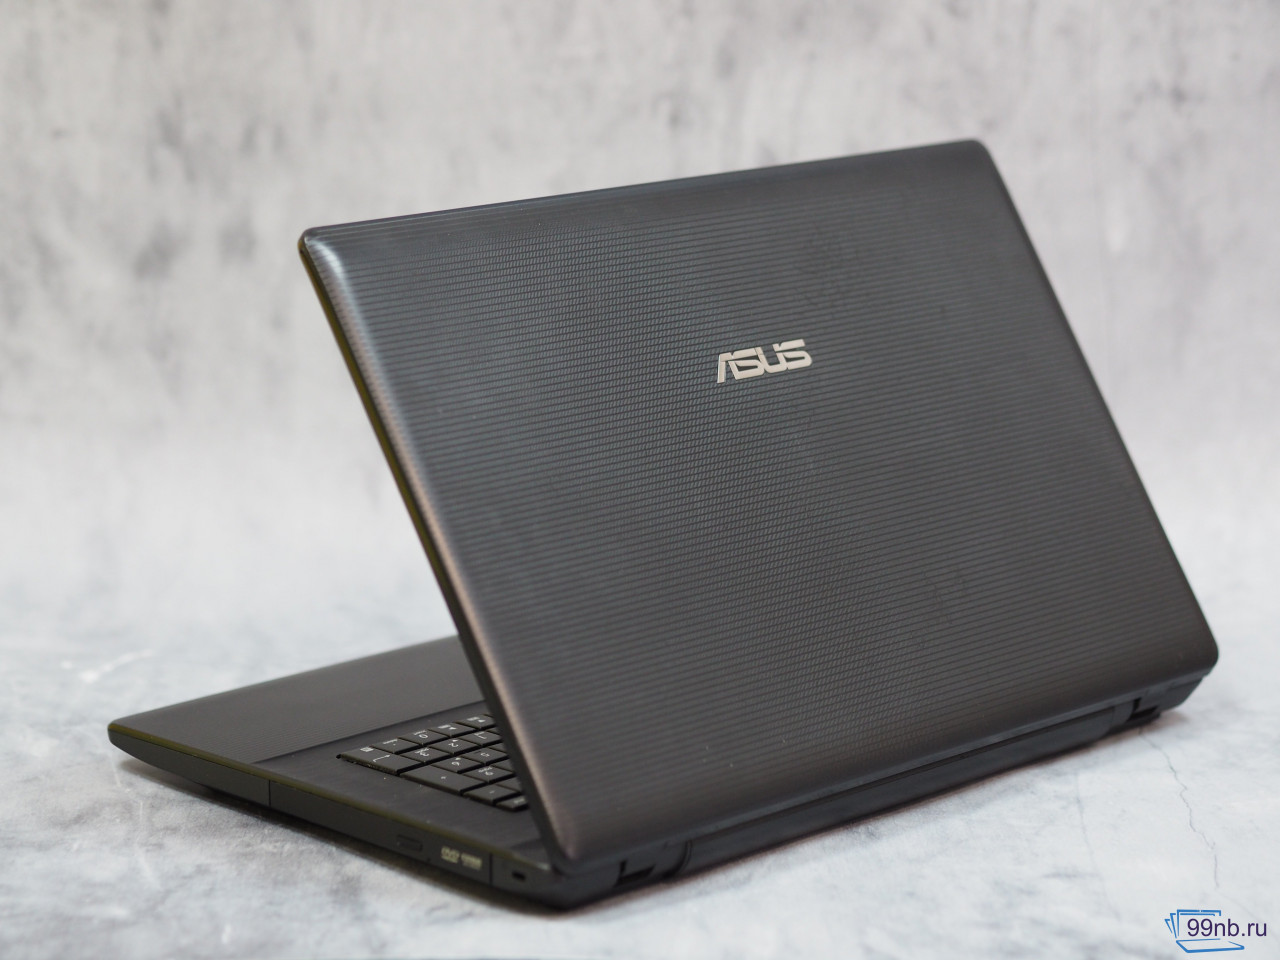 Мощный Asus на i5/GeForce/500gb